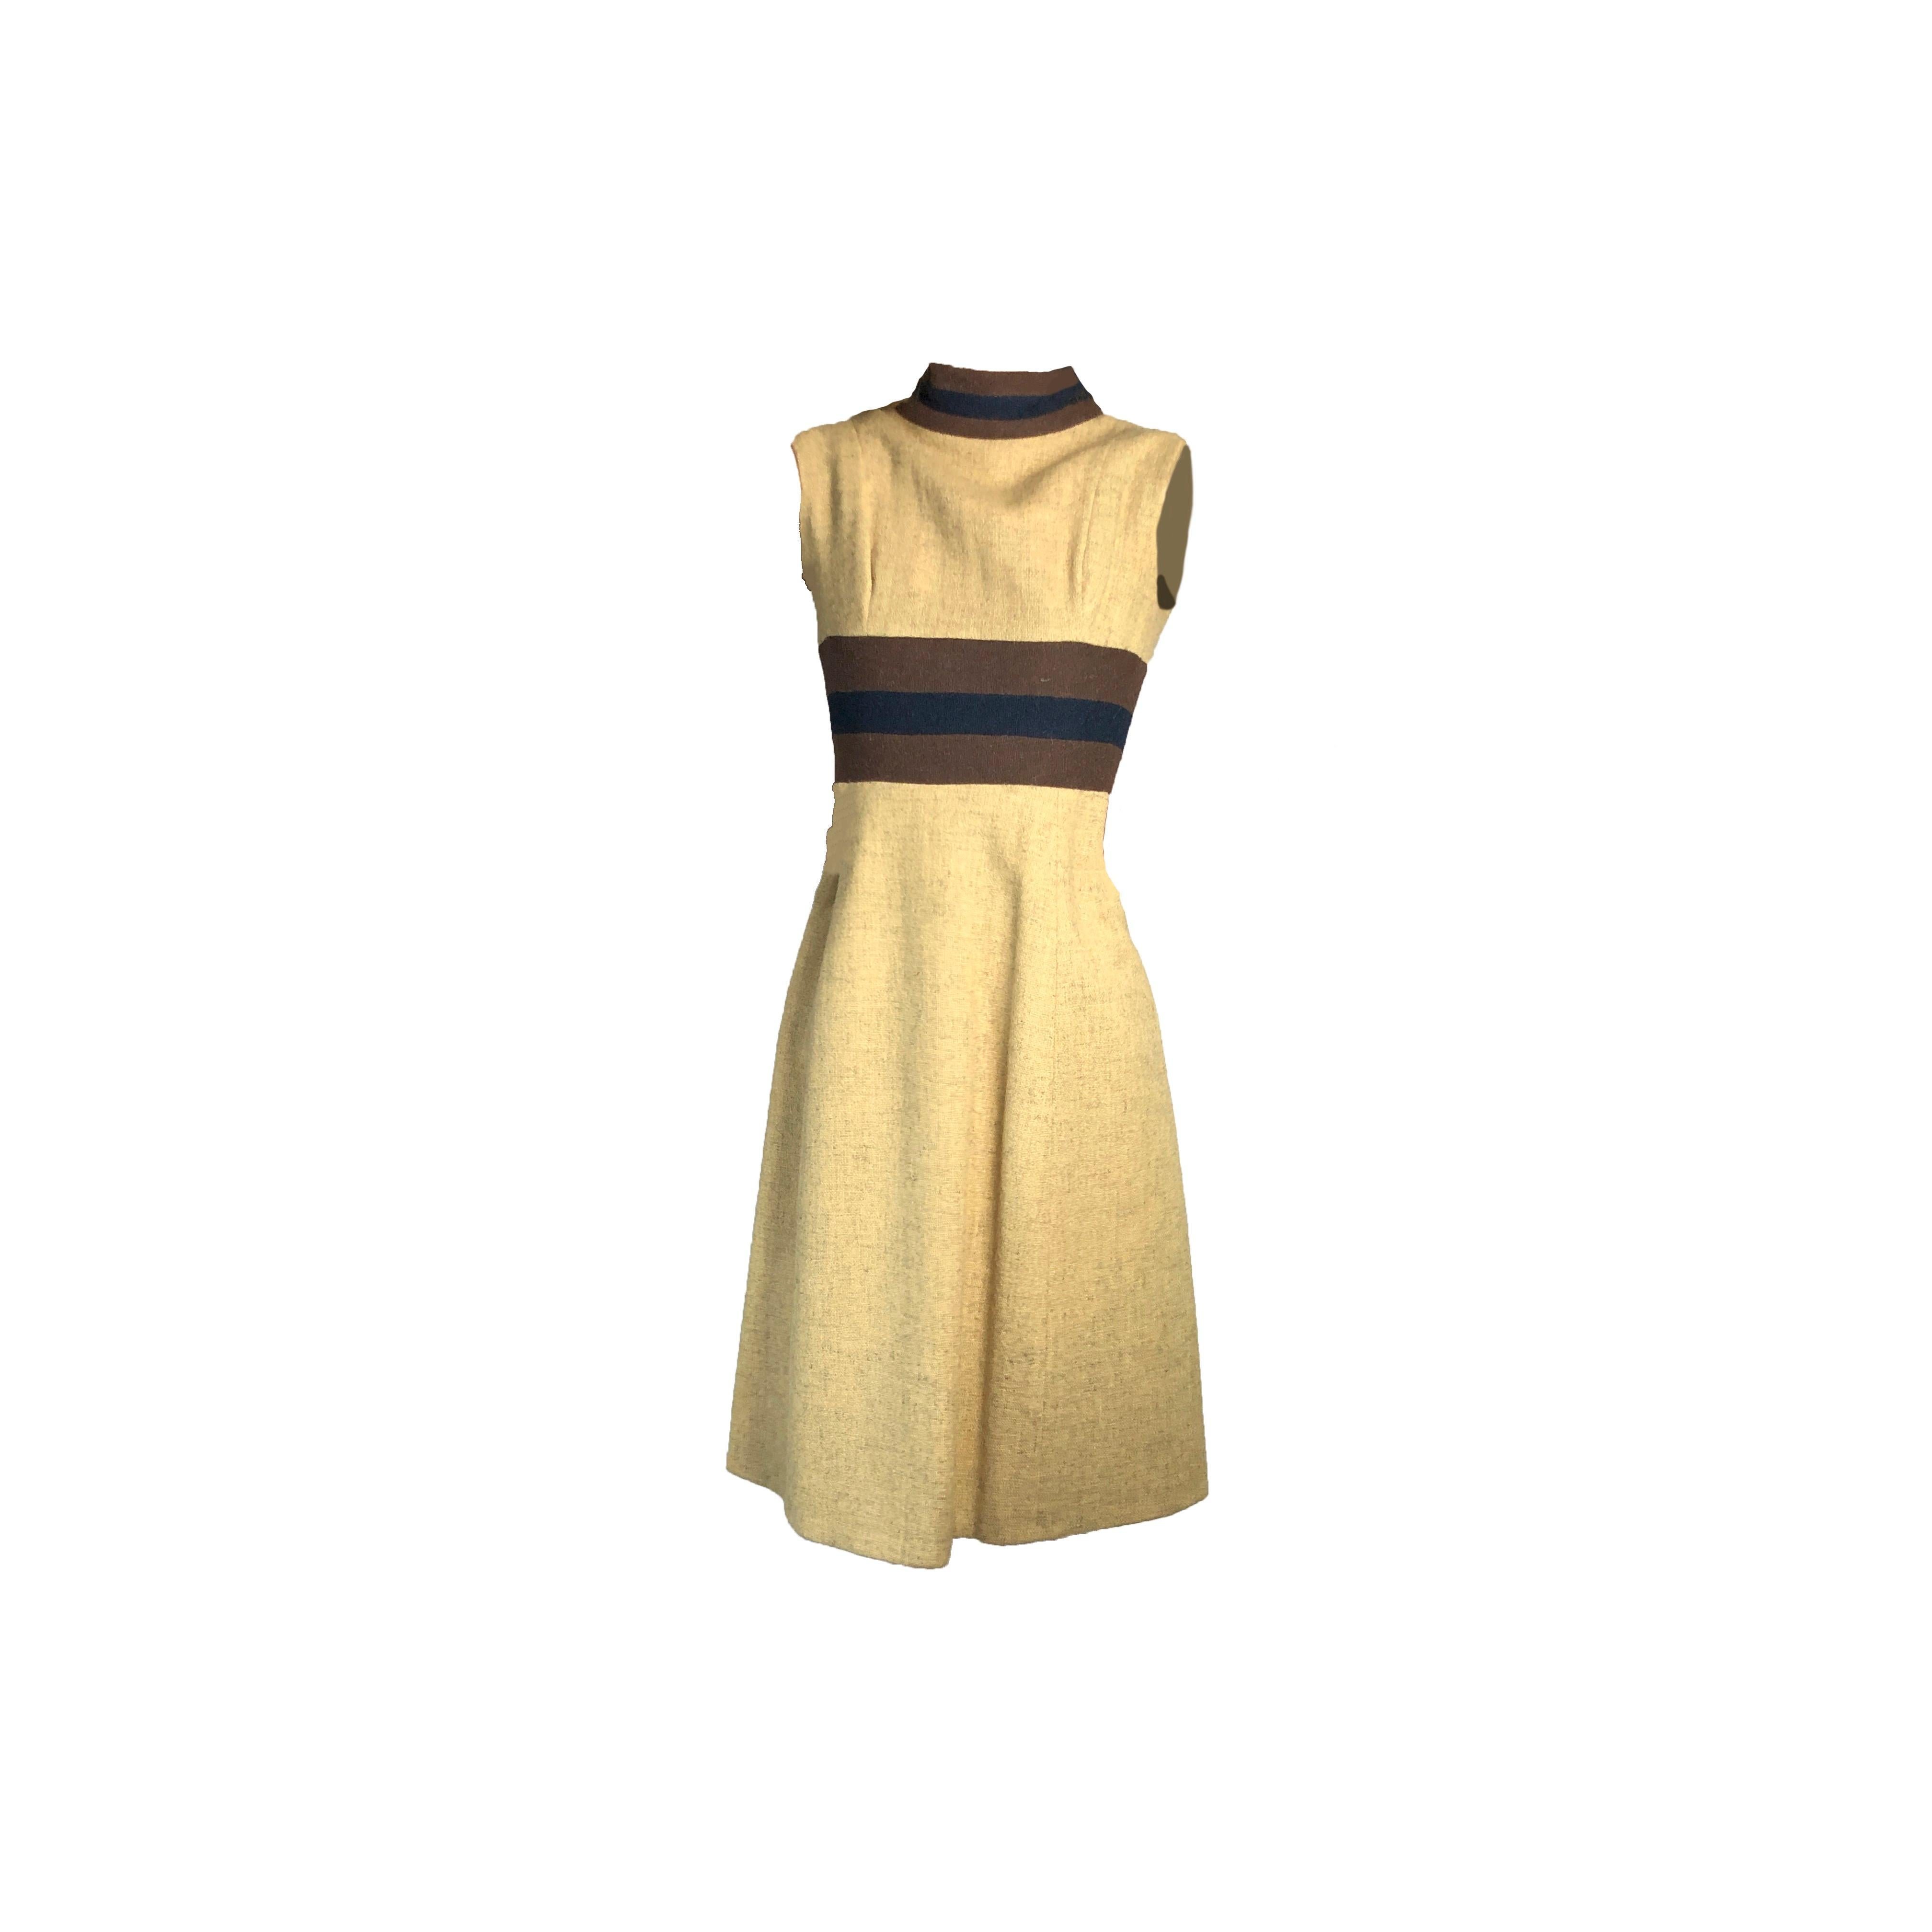 Rare Museum worthy Mary Quant wool dress, circa 1960s.